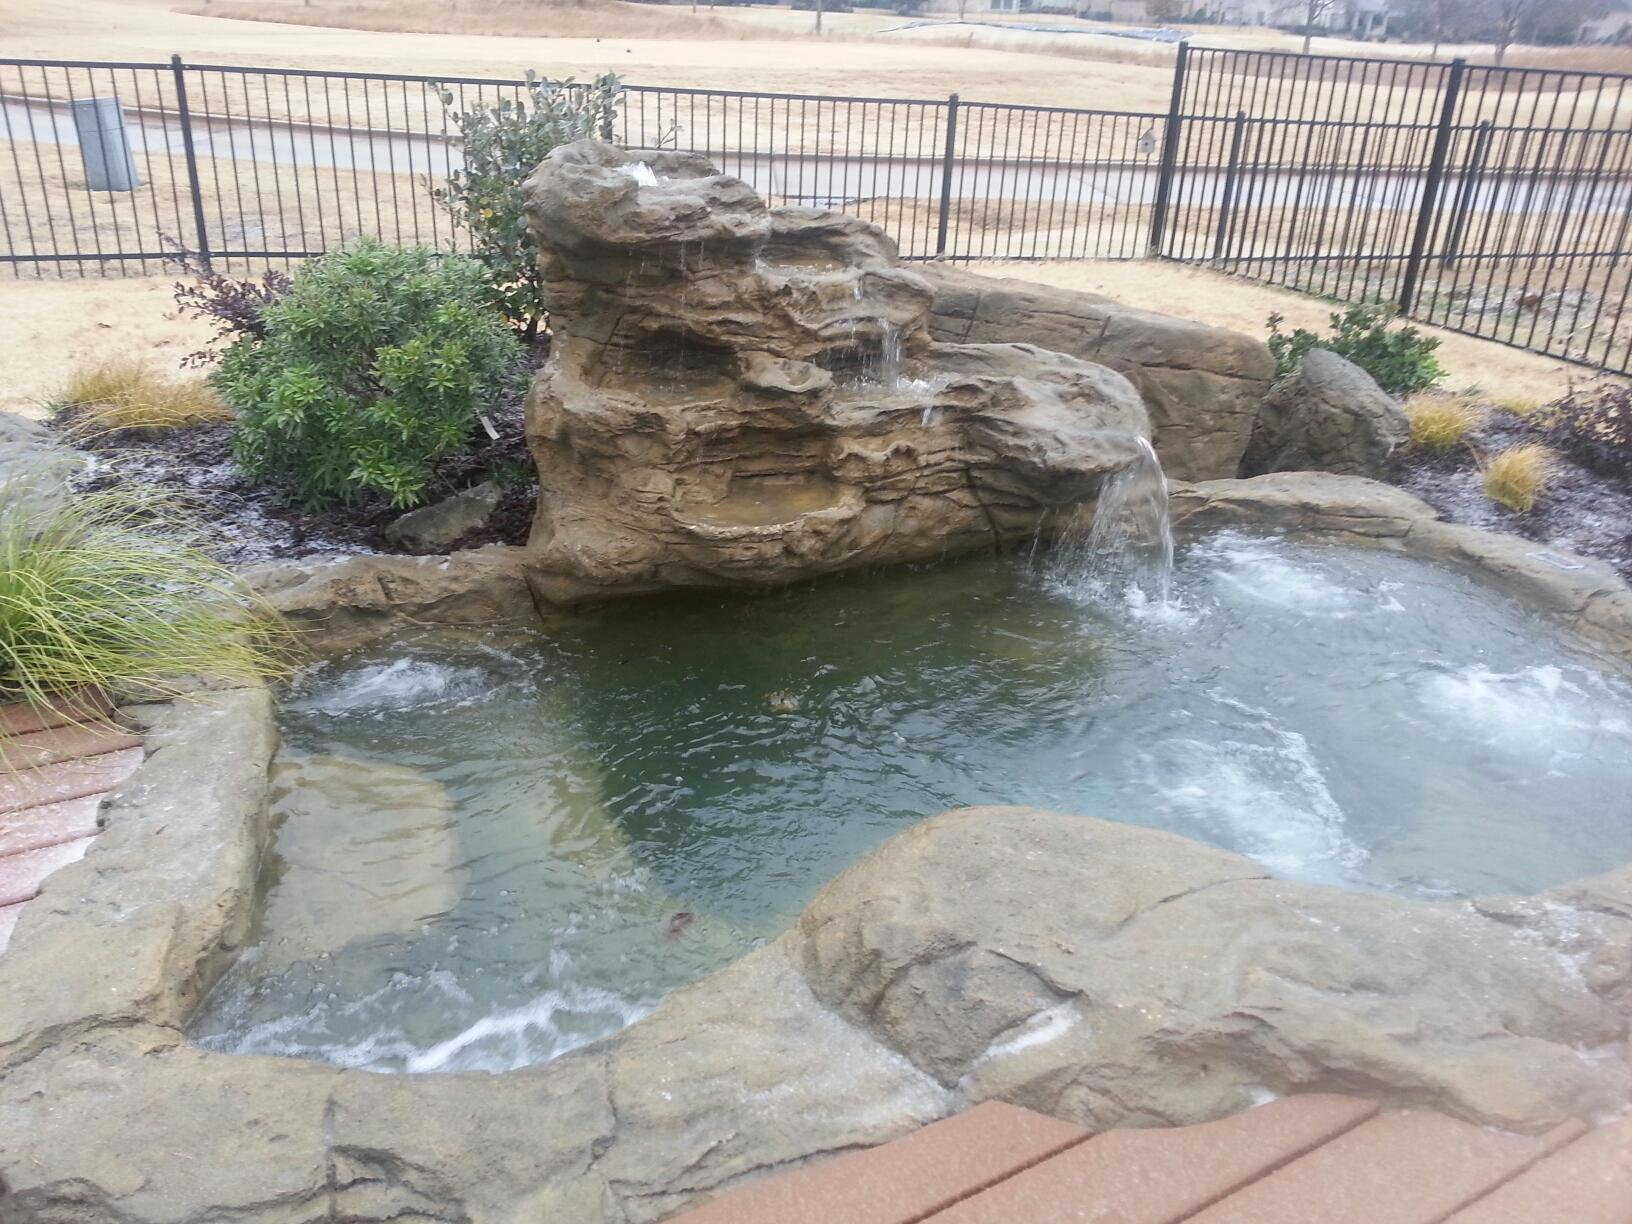 In Ground Pool Ideas Swimming Pool Rock Waterfalls Kits Fountains And Boulders